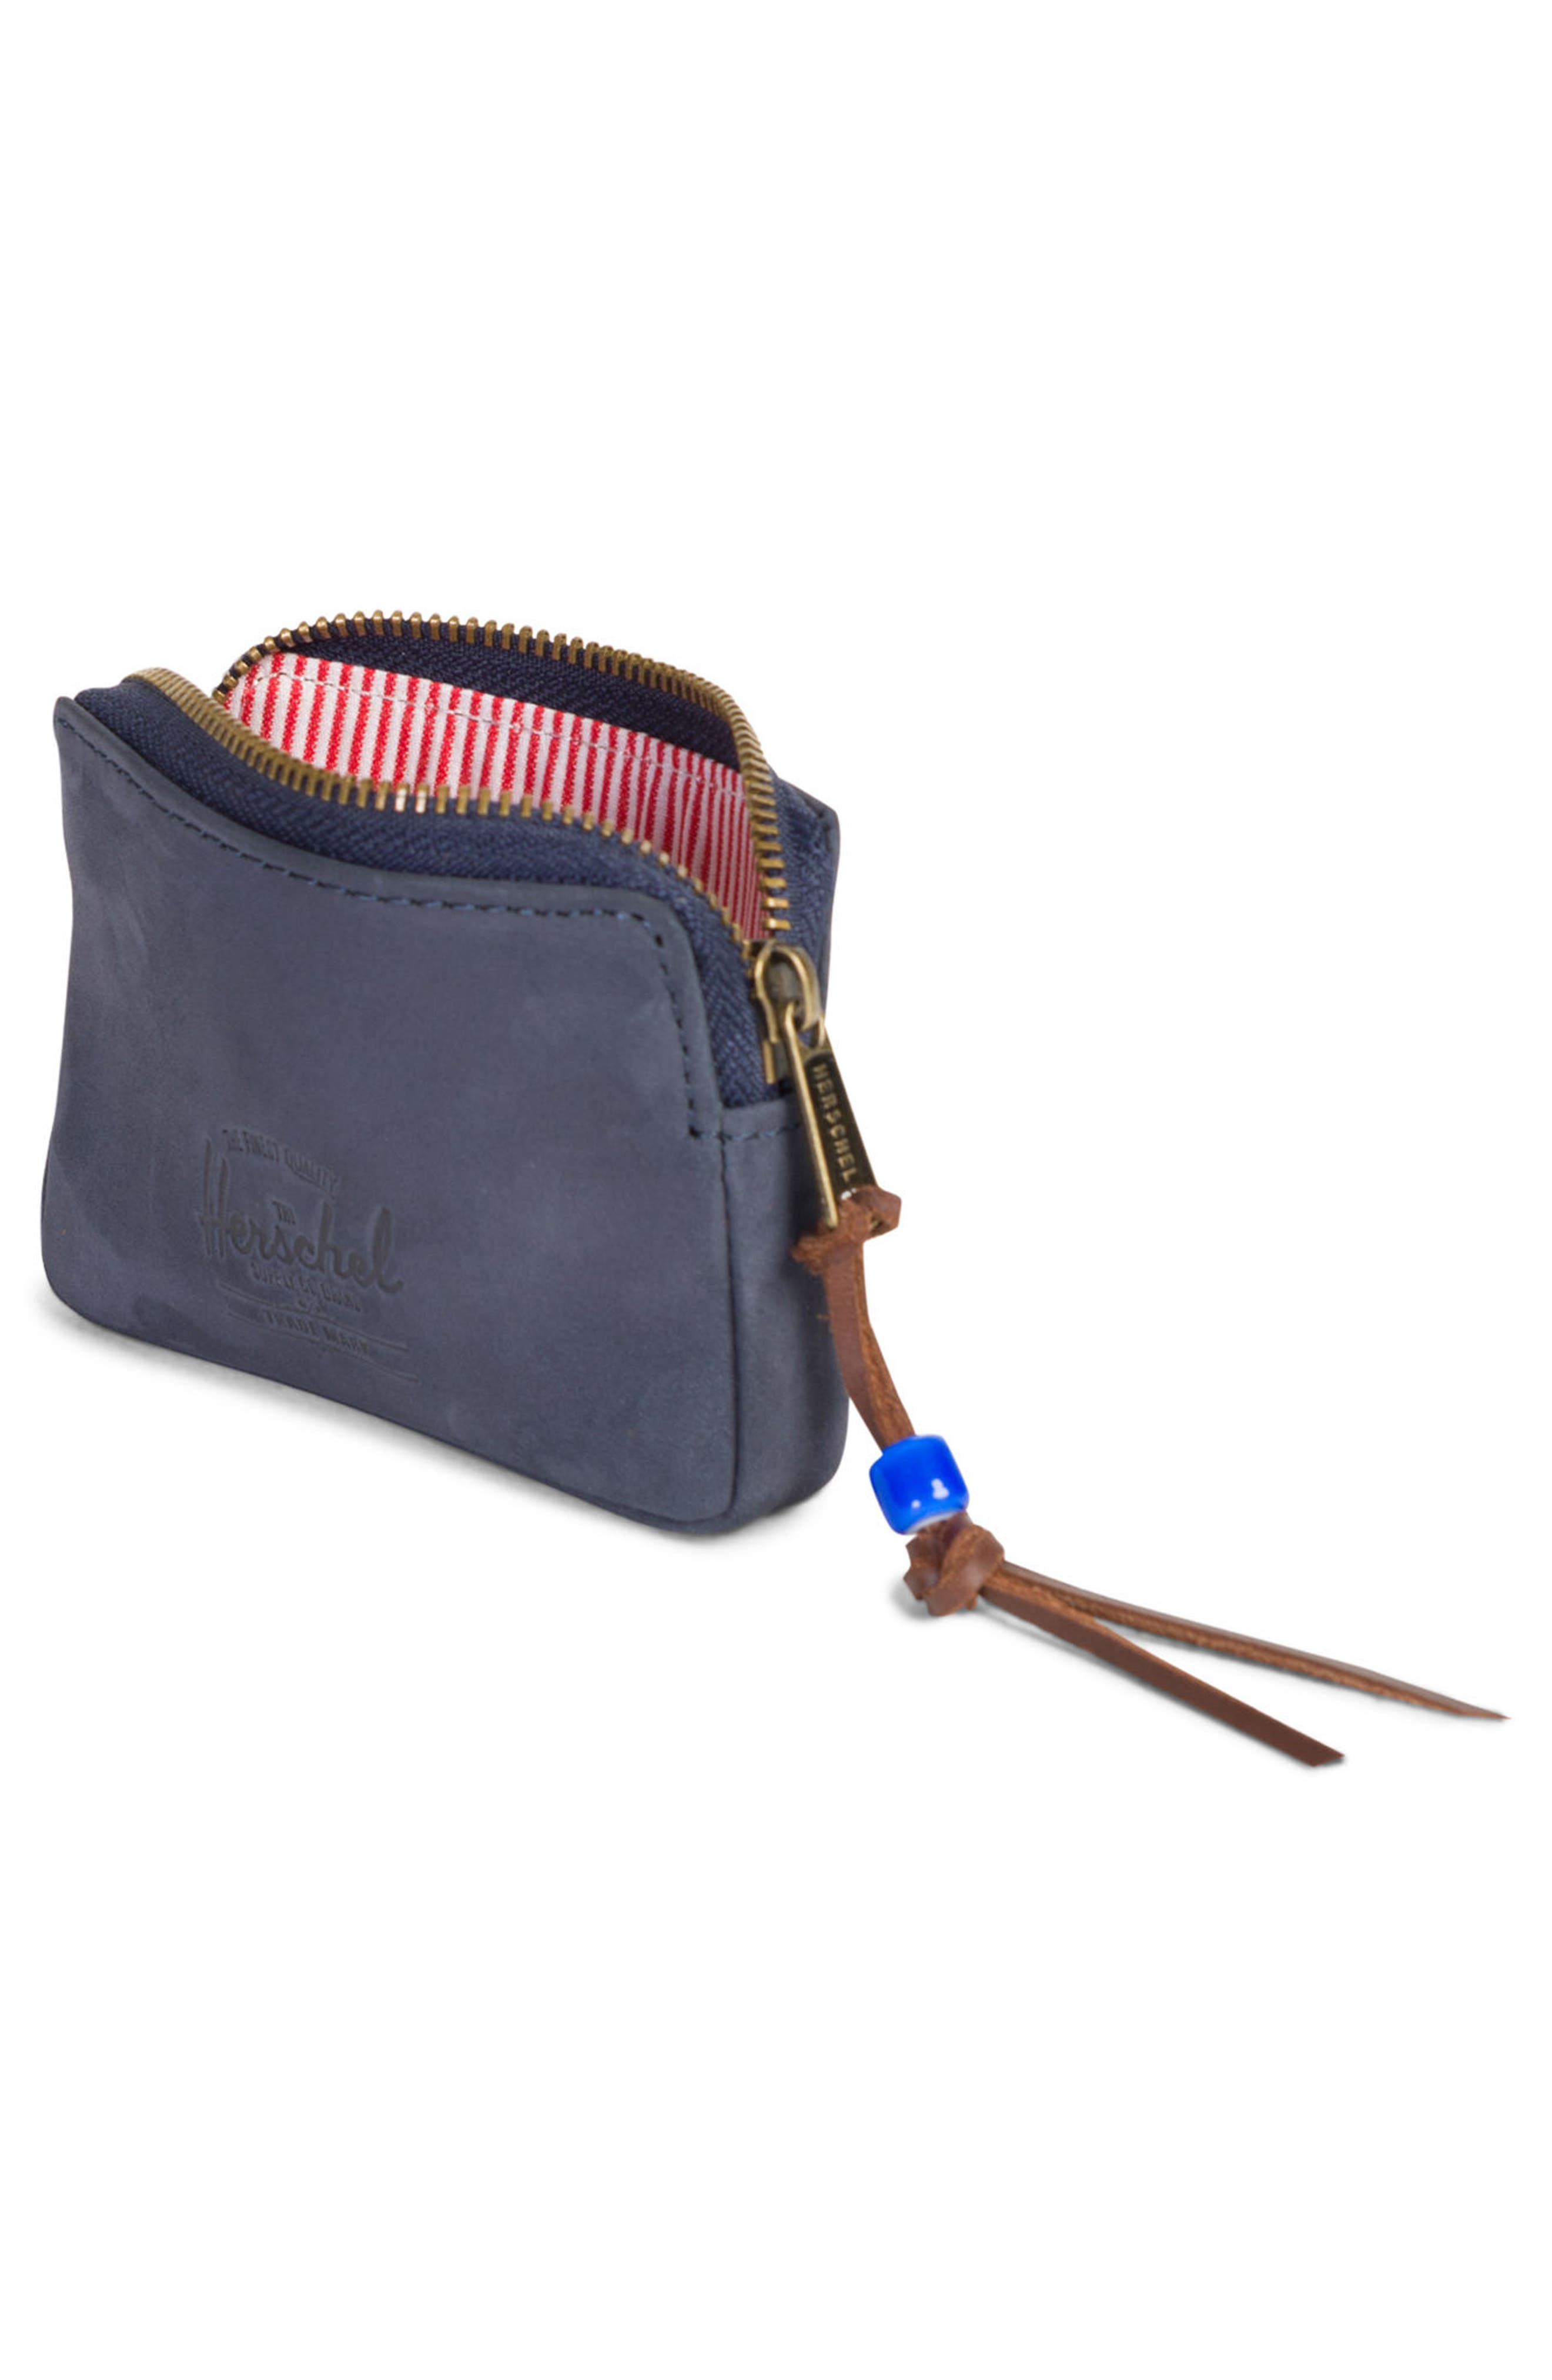 Oxford Zip Pouch,                             Alternate thumbnail 2, color,                             Peacoat Leather